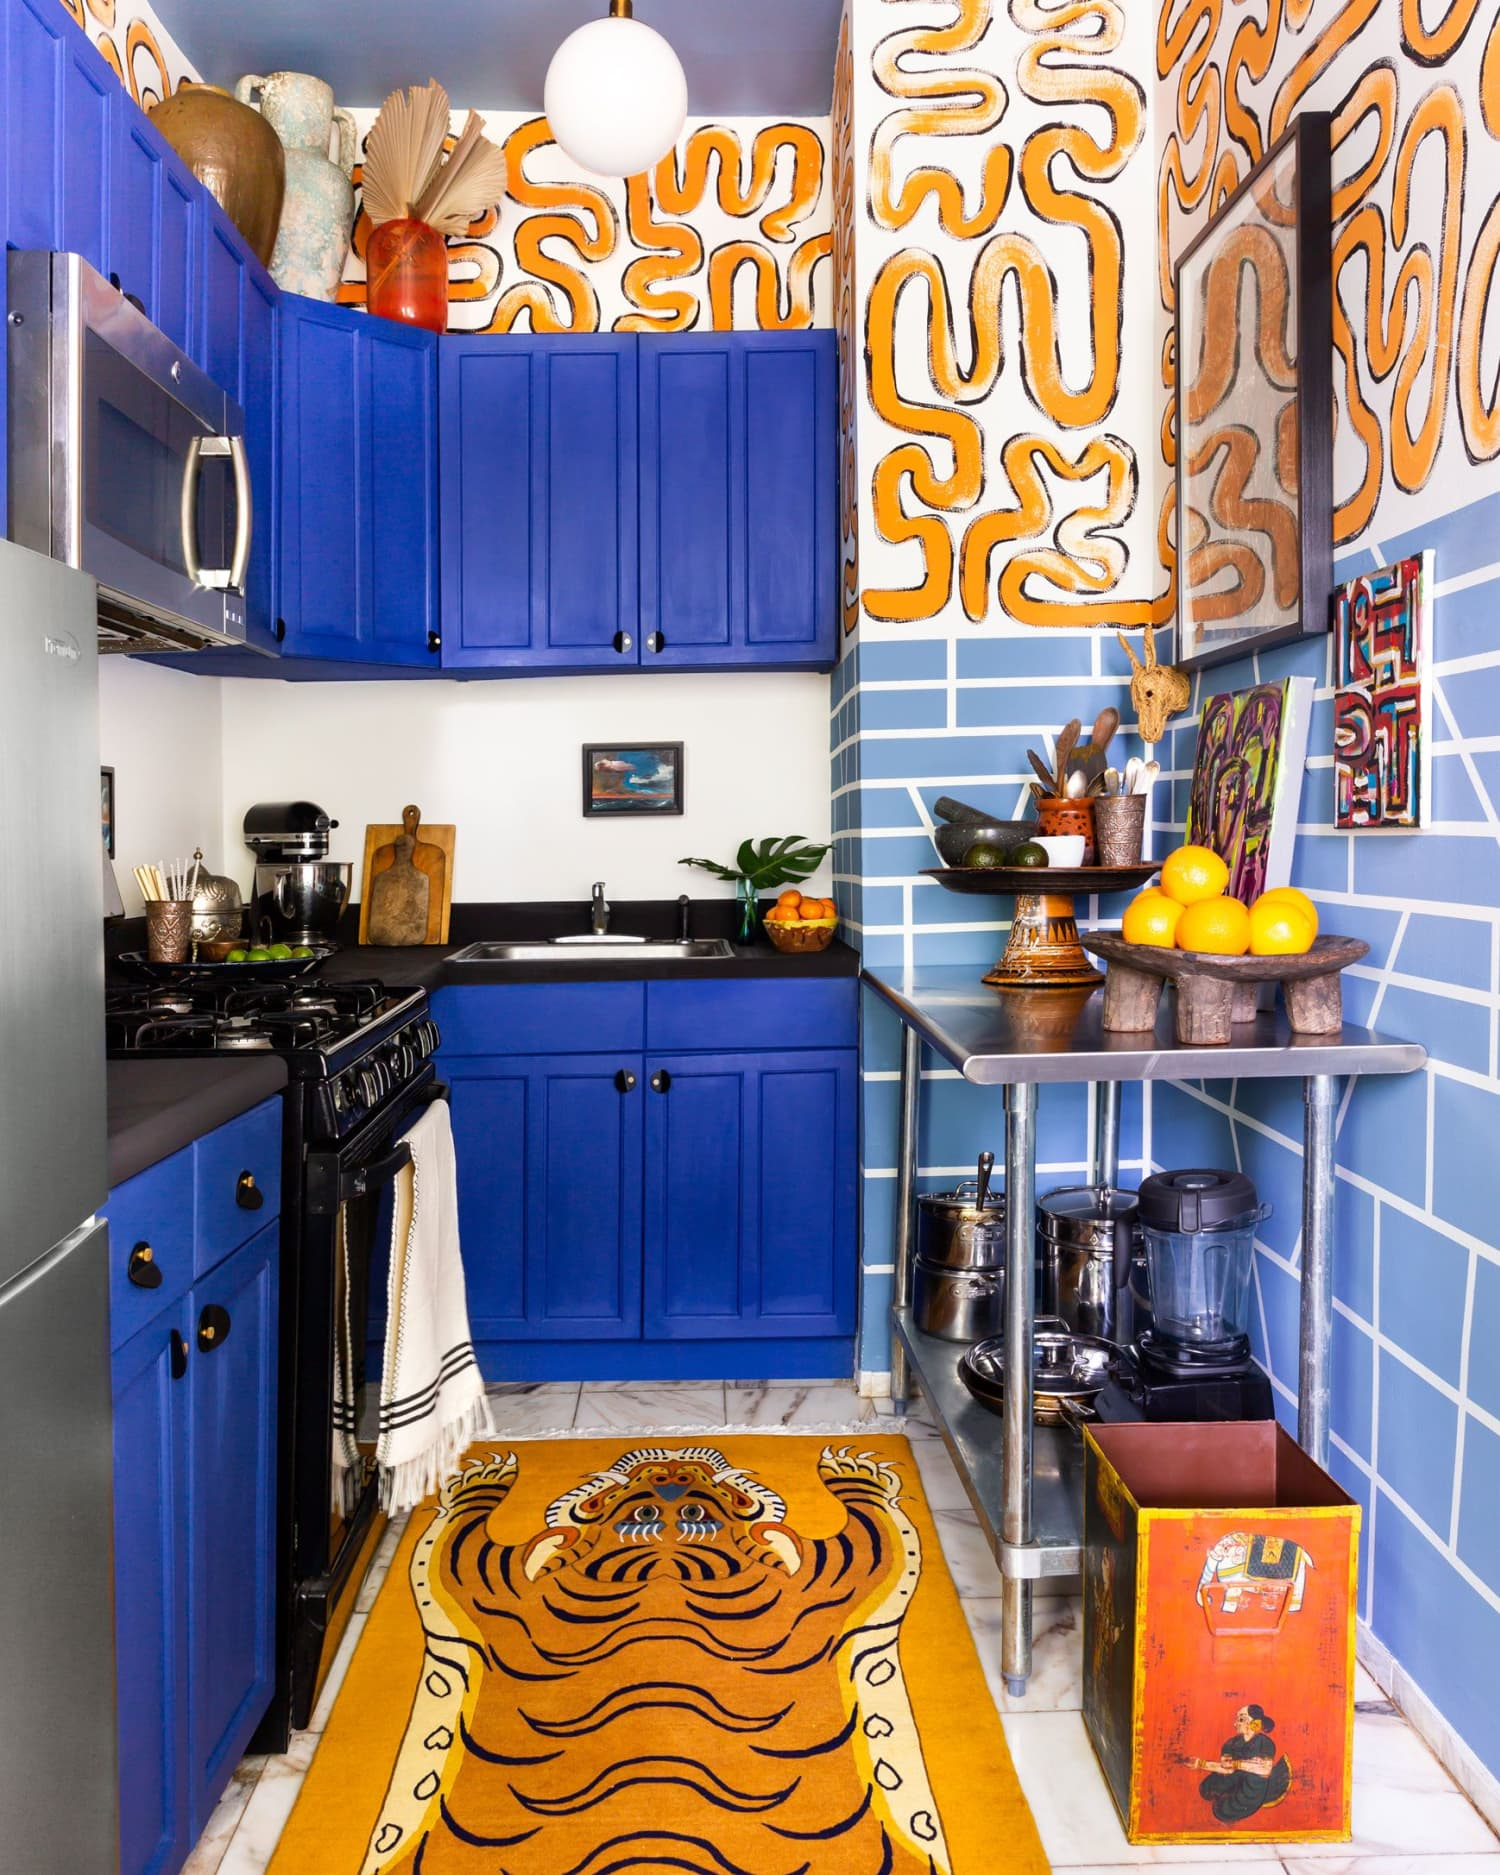 A Rental Kitchen Goes to the Wild Side With Animal Motifs, Paint, and Graphic Prints Galore